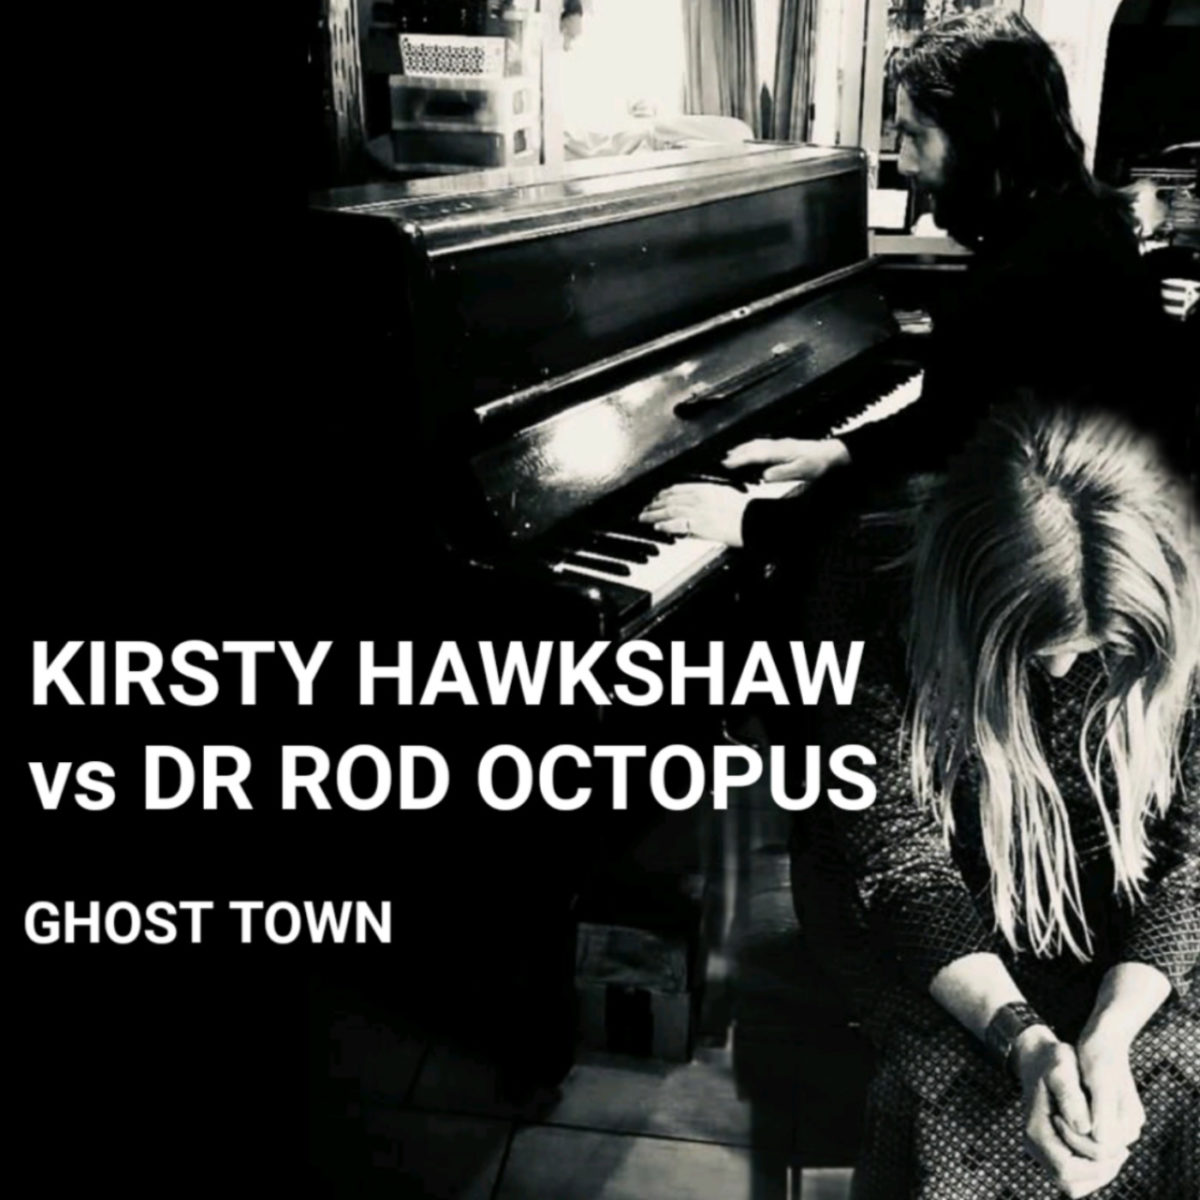 GHOST TOWN 2020 DR. ROD OCTOPUS VS KIRSTY HAWKSHAW